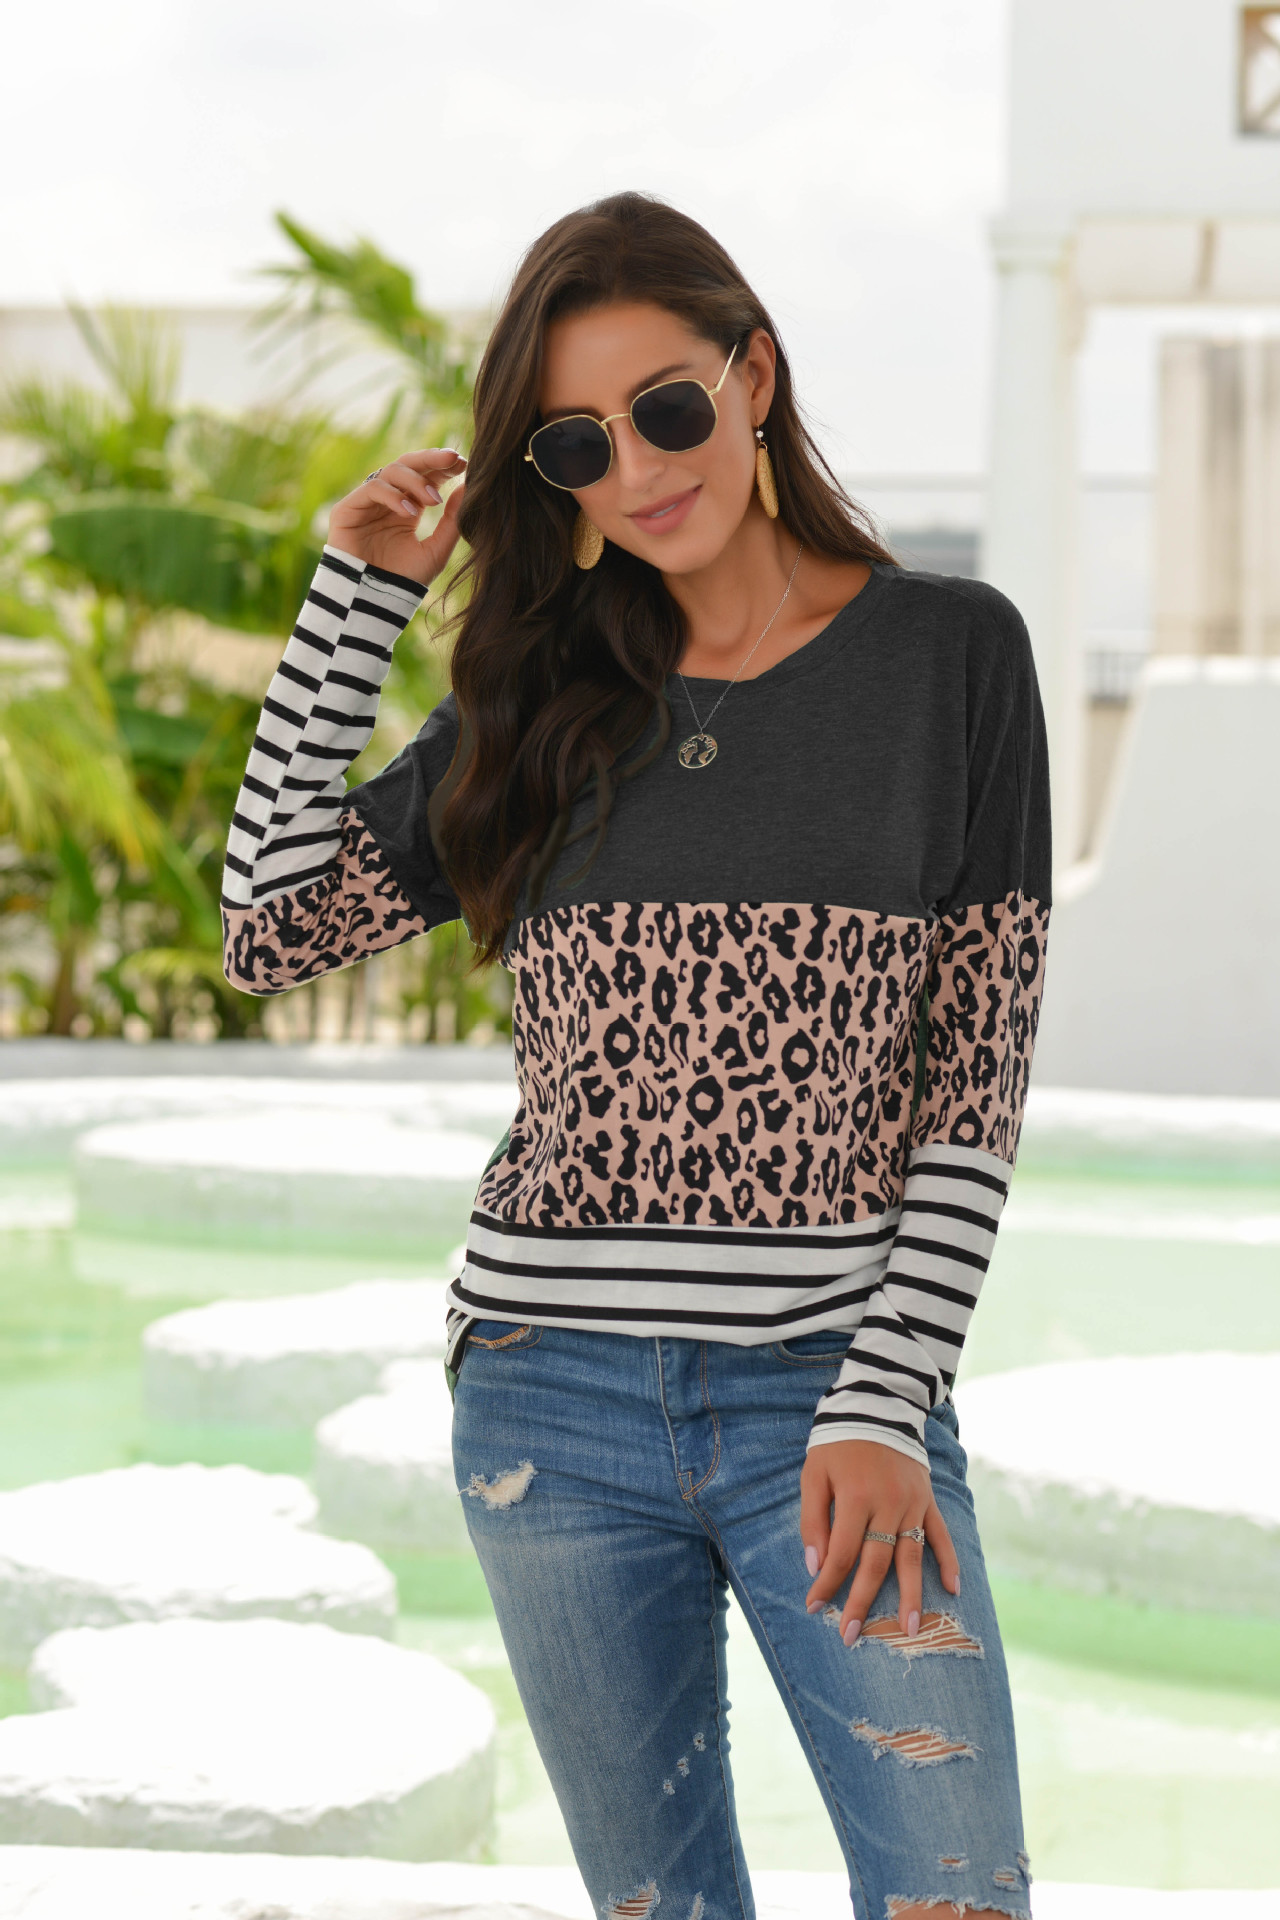 2020 women's autumn new long-sleeved leopard print stitching T-shirt